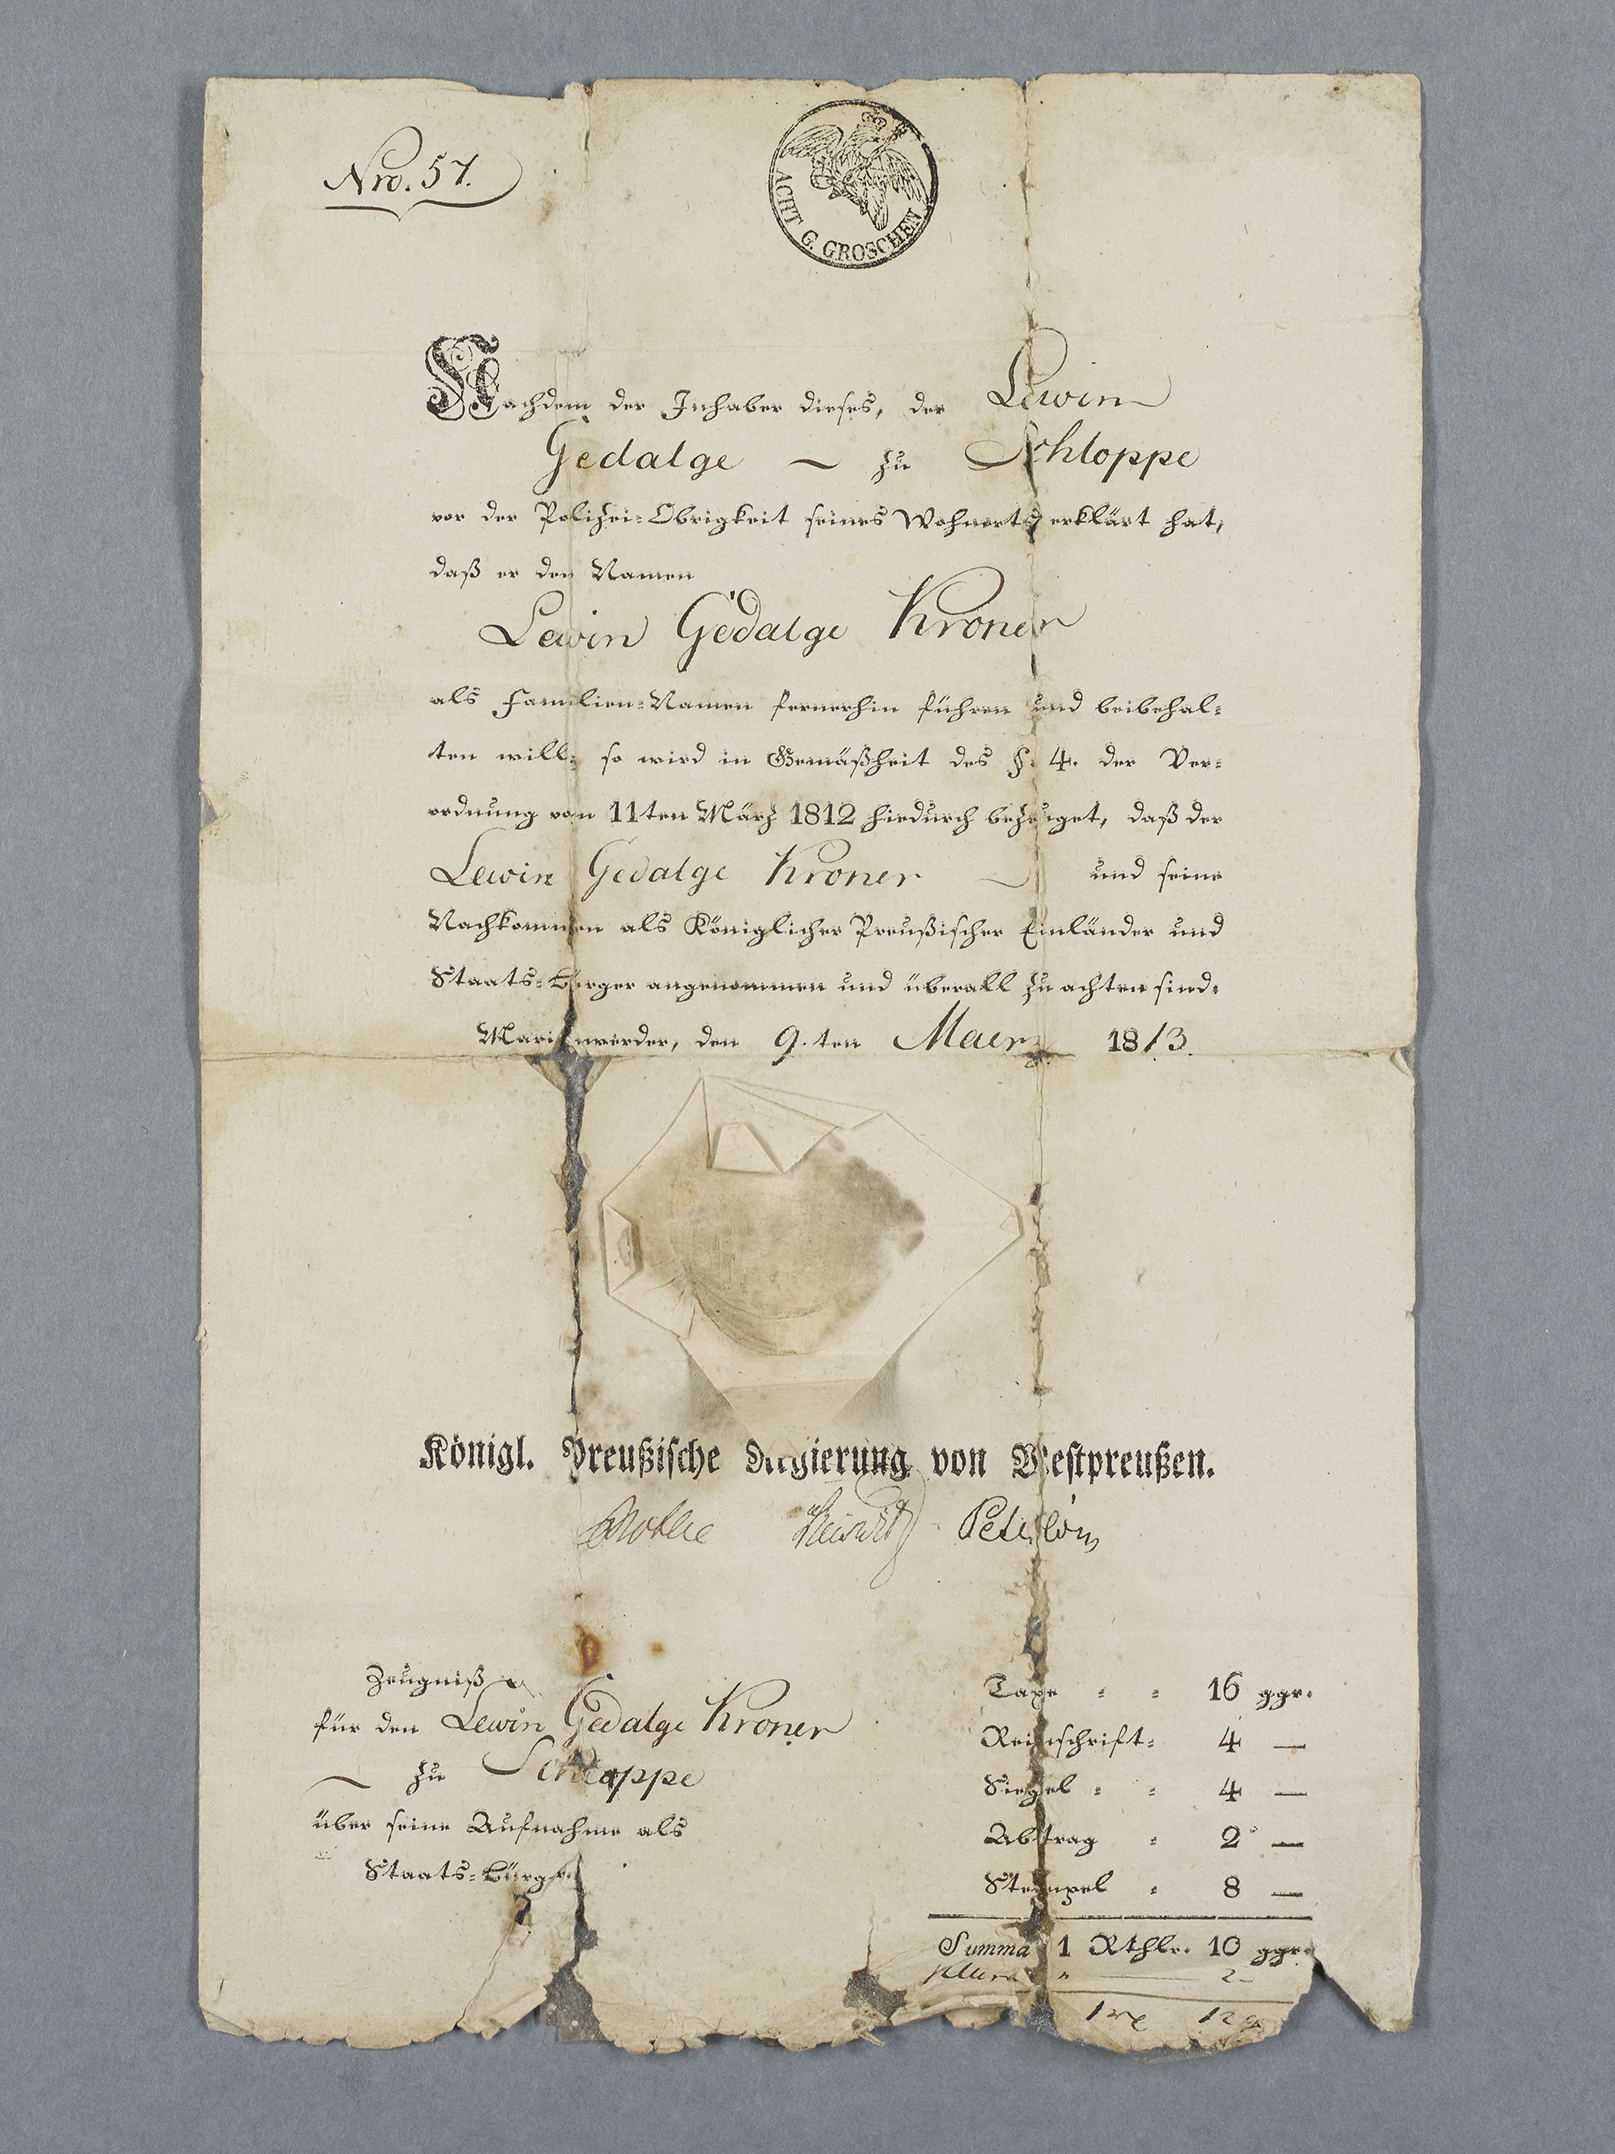 Mostly handwritten form with a paper seal, frayed along the edges